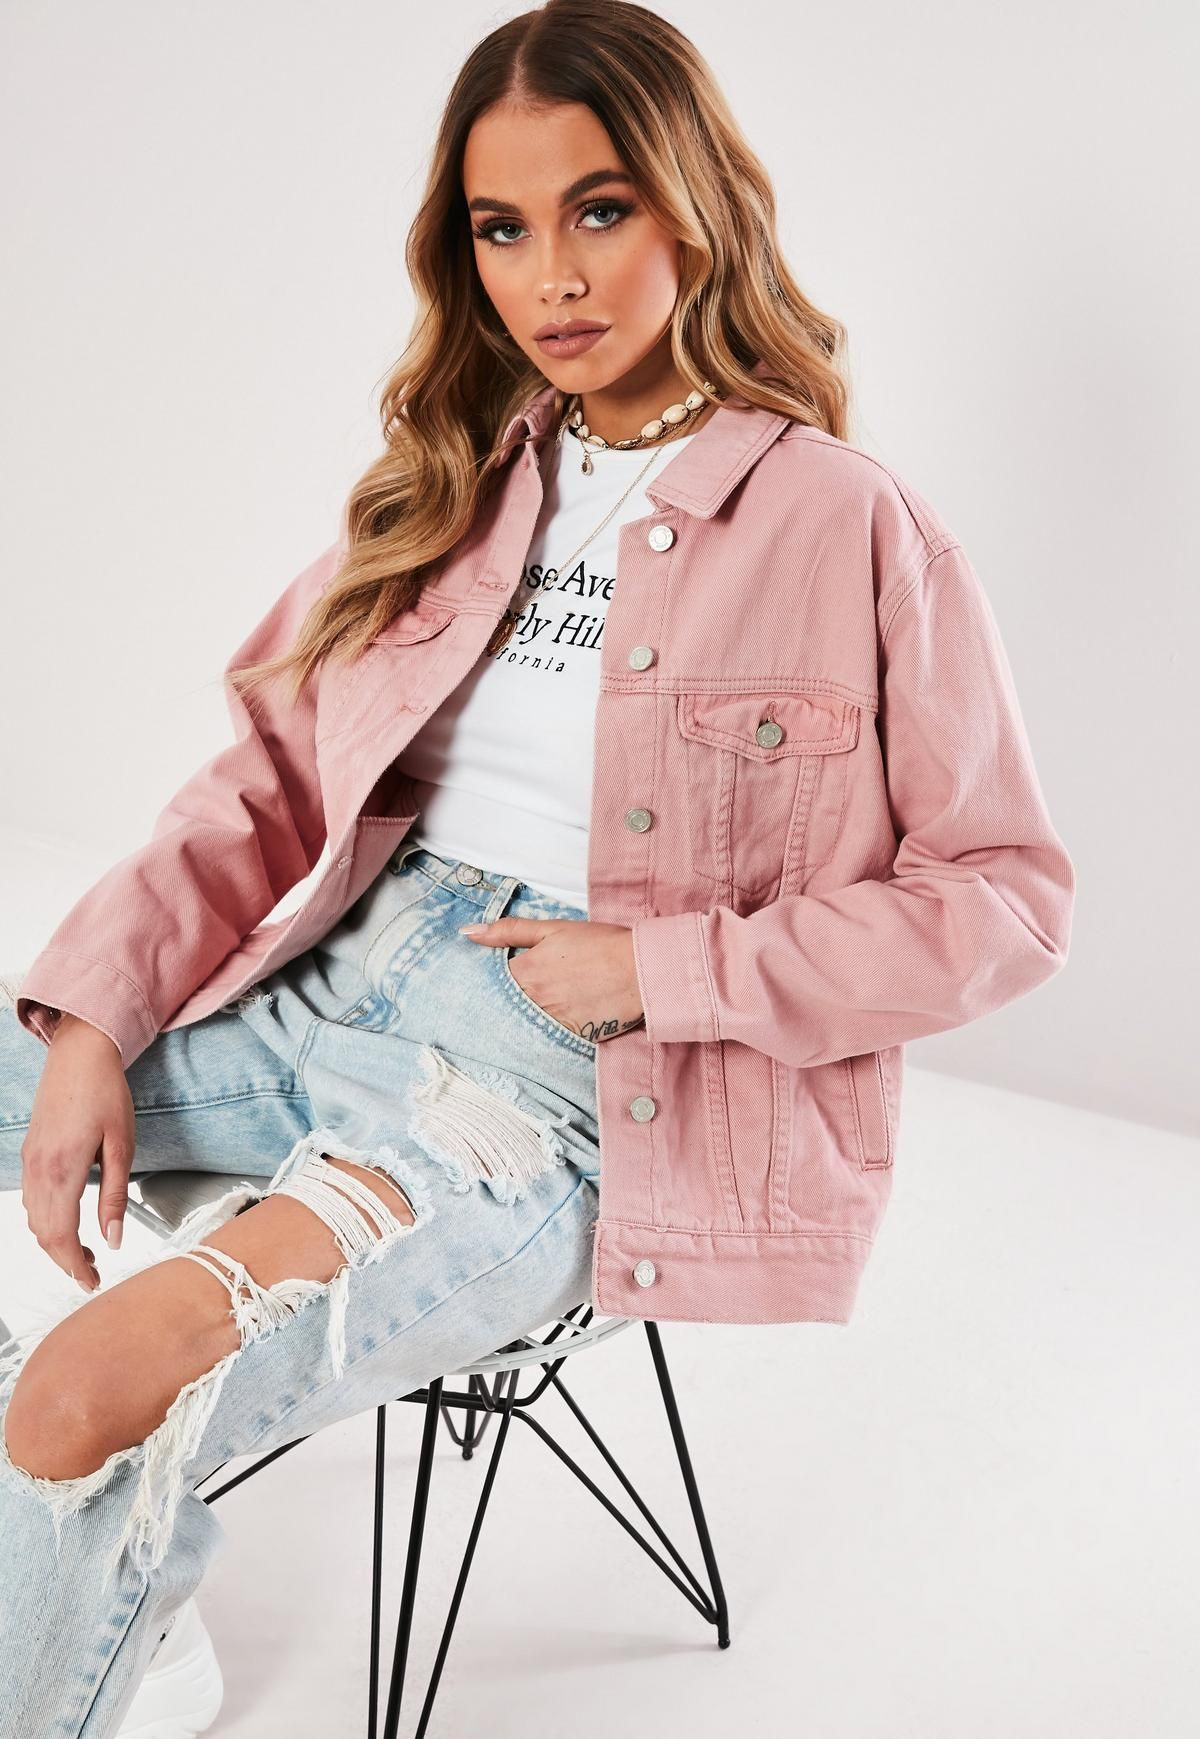 How To Style Pink Denim Jacket